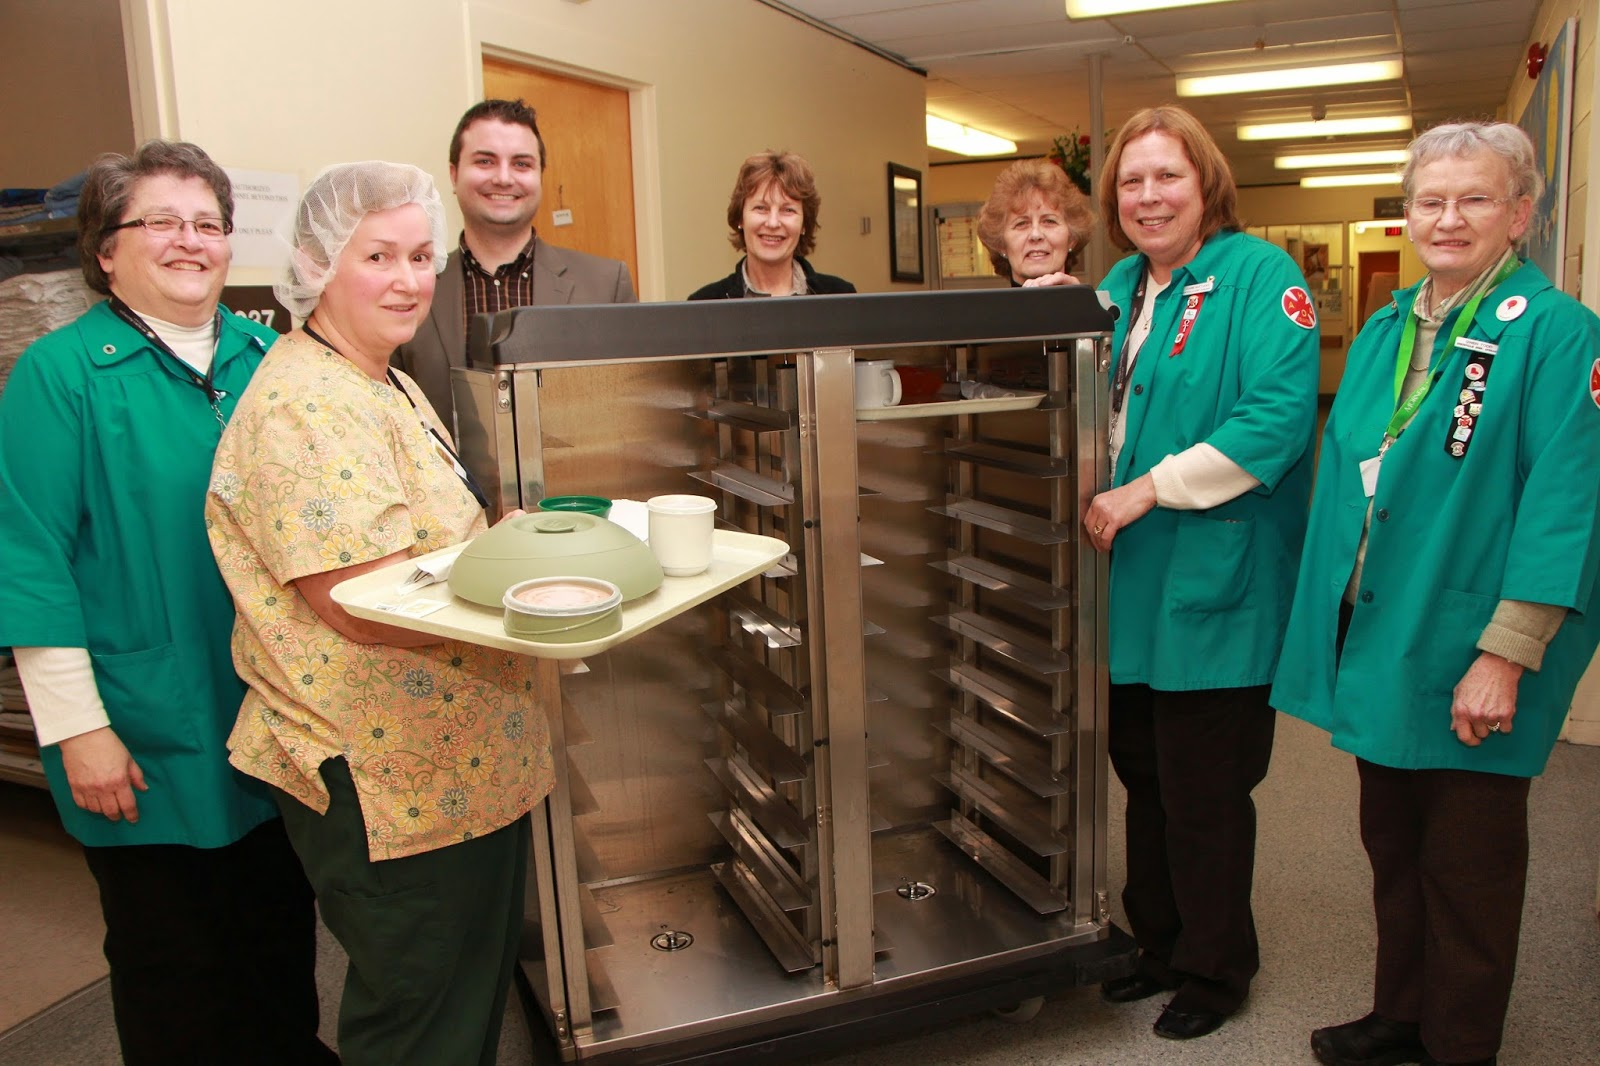 Staff and volunteers celebrate the food service improvements at Huntsville District Memorial Hospital Site